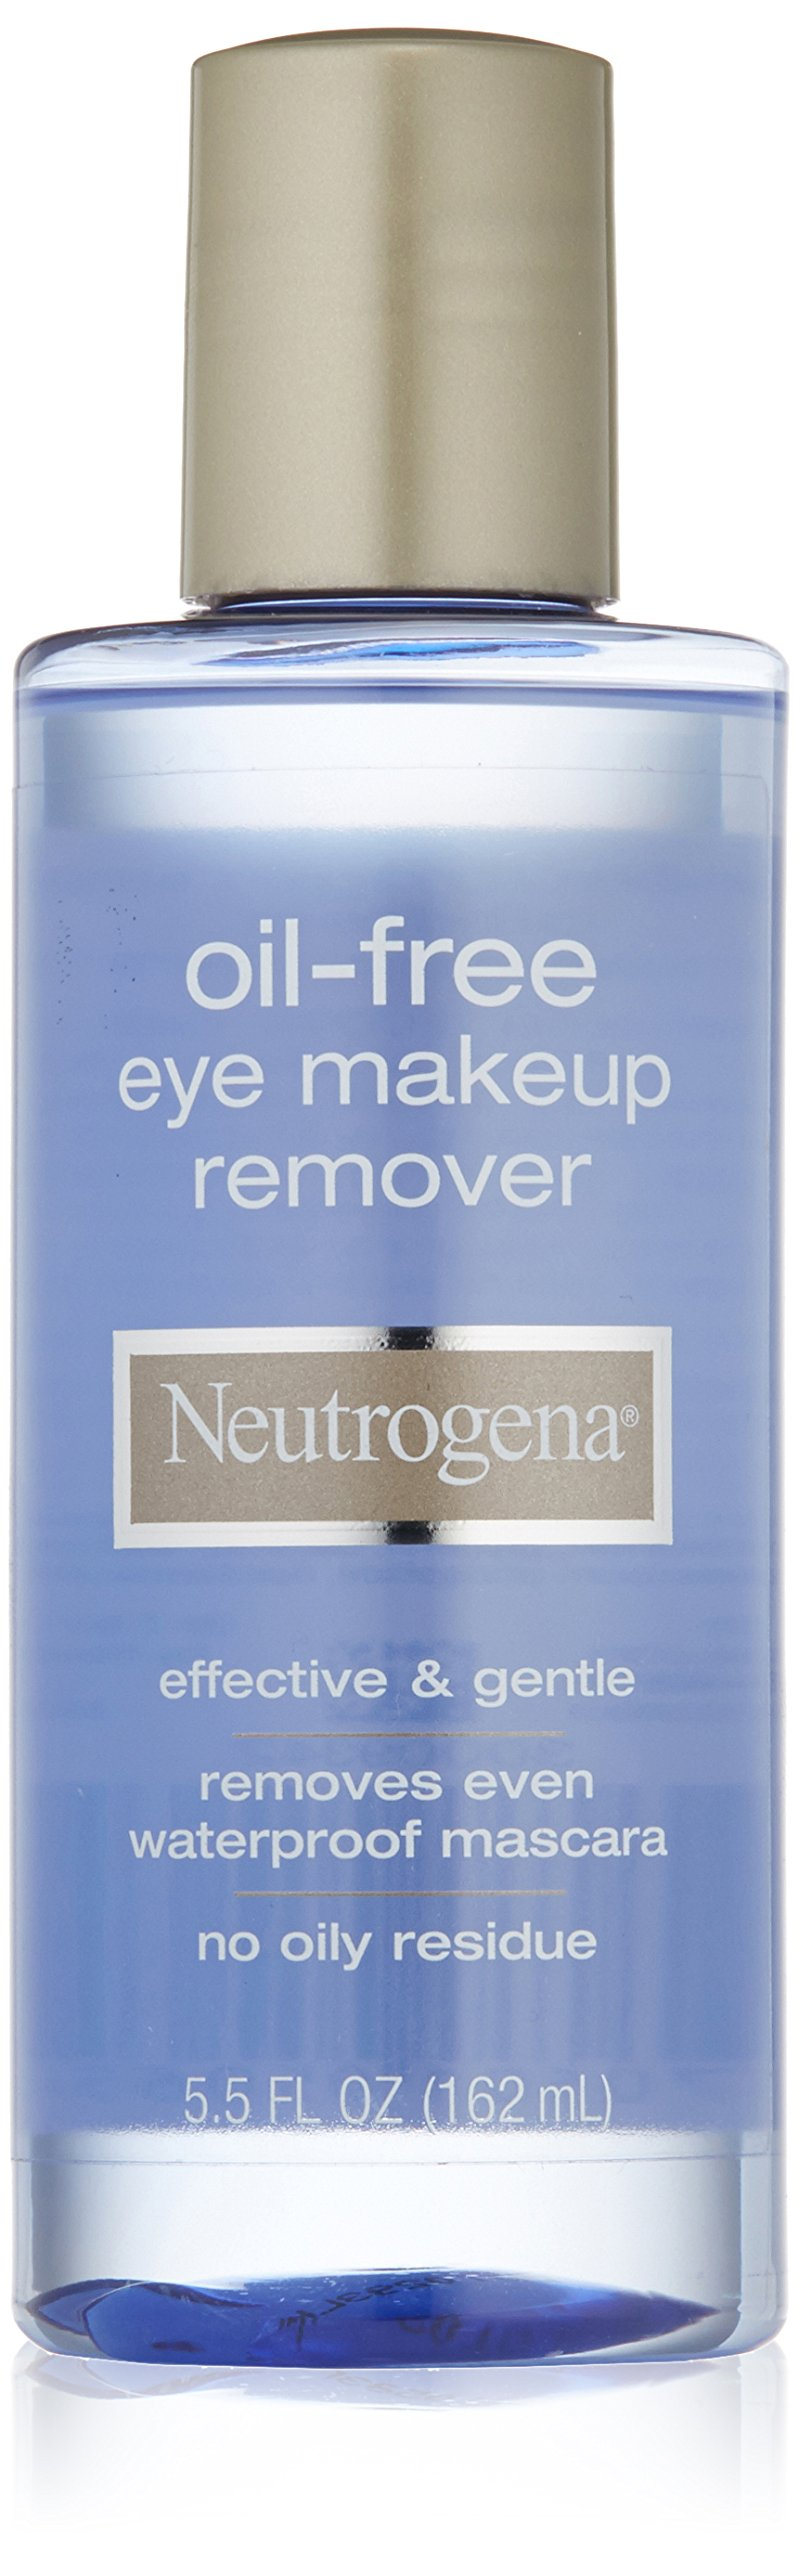 Neutrogena Gentle Oil-Free Eye Makeup Remover & Cleanser for Sensitive Eyes, Non-Greasy Makeup Remover, Removes Waterproof Mascara, Dermatologist & Ophthalmologist Tested, 5.5 fl. oz ( Pack of 3)